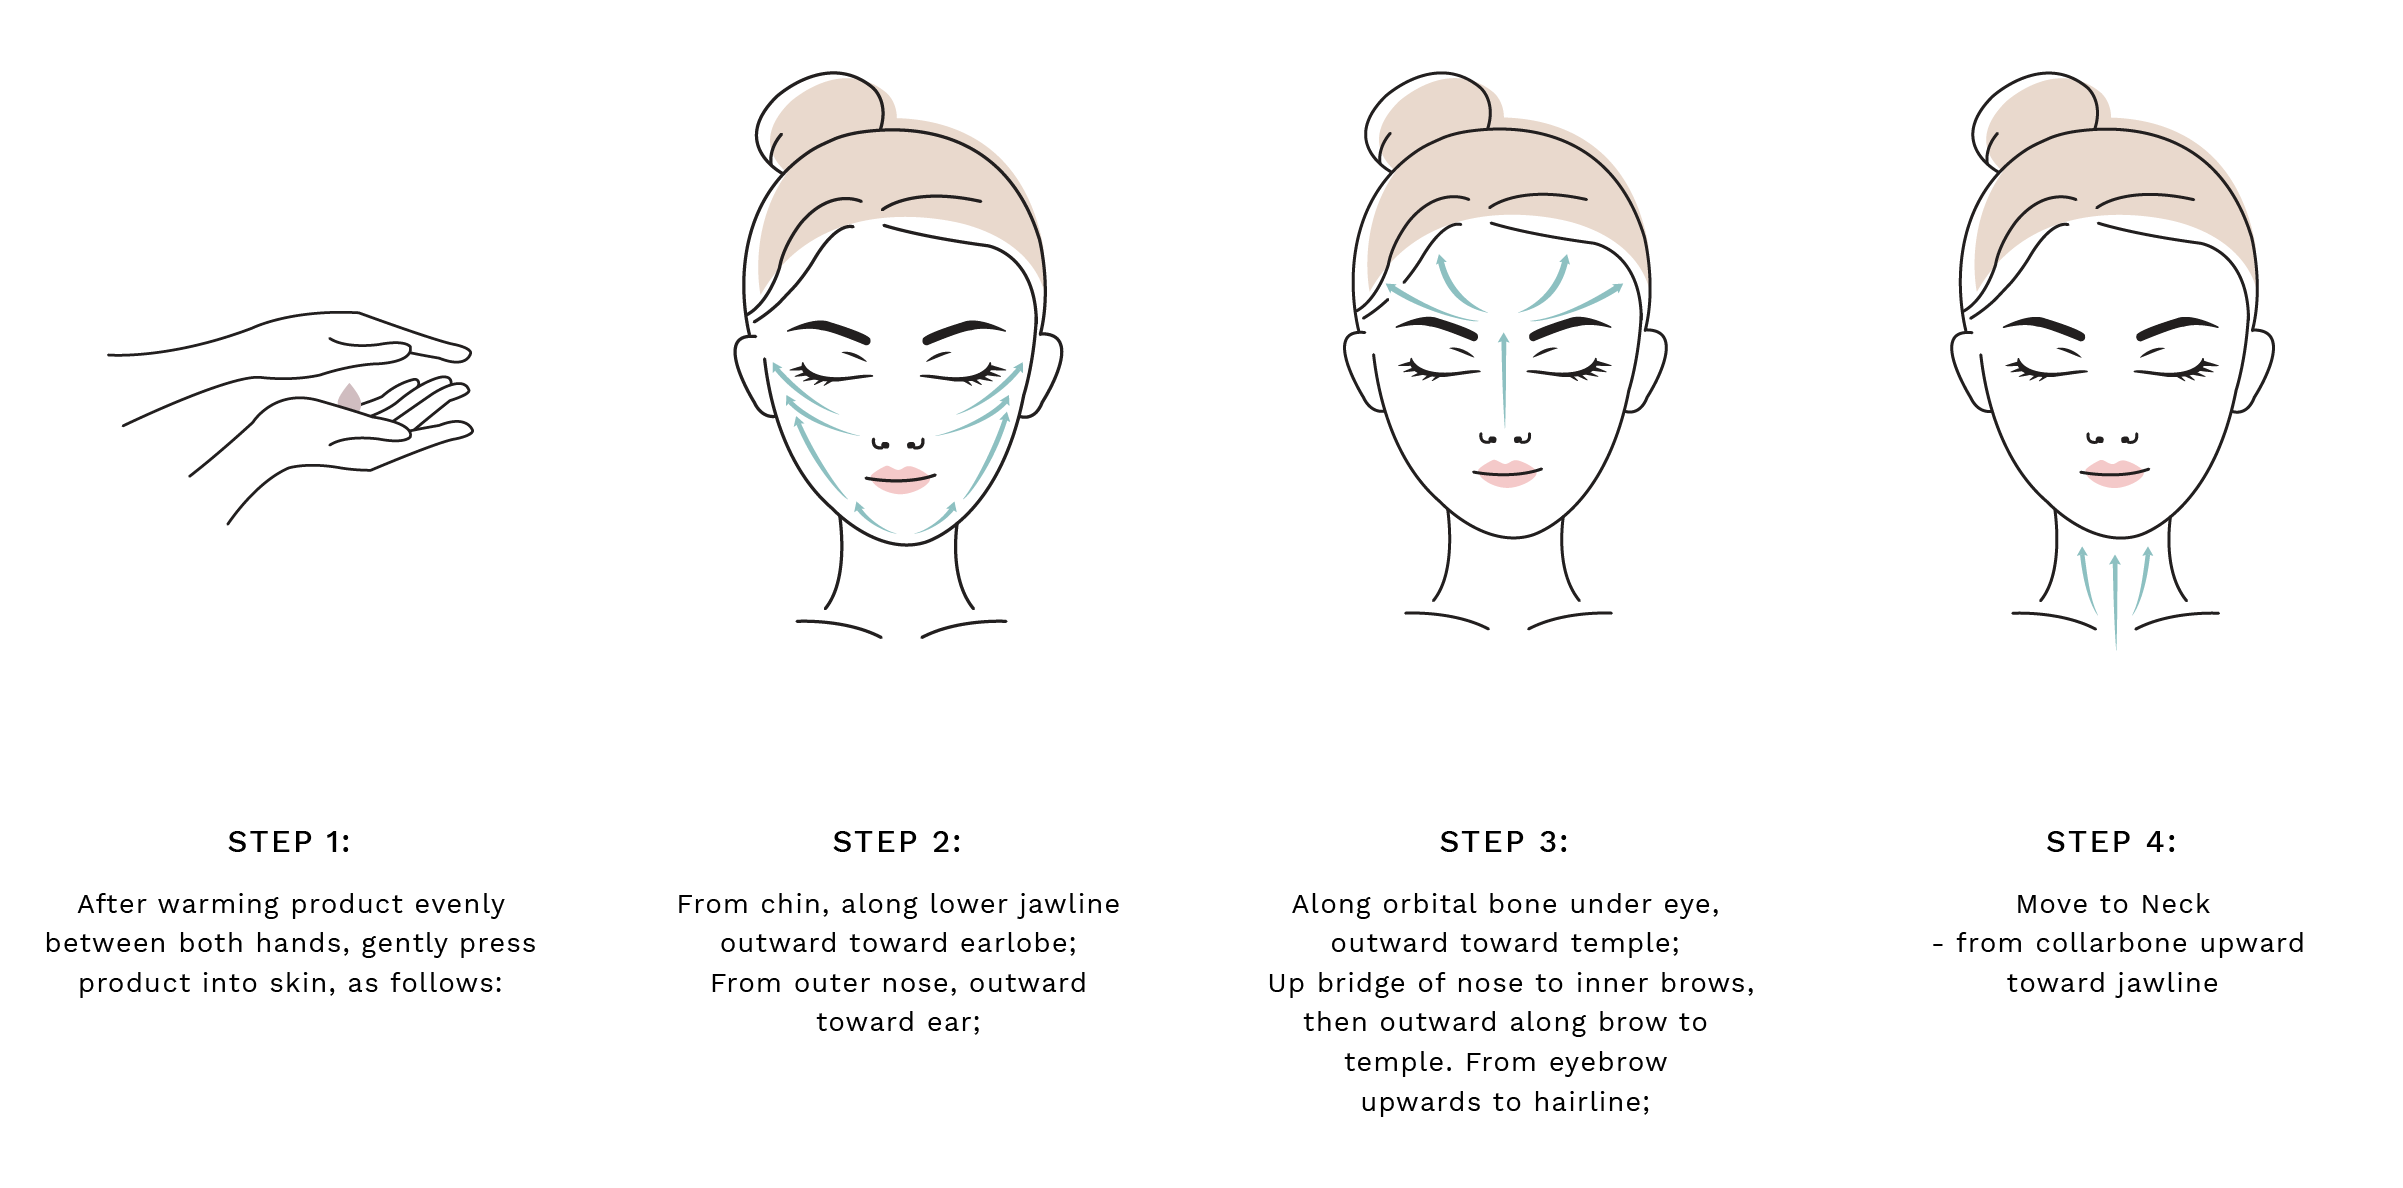 Step 1: After warming product evenly between both hands, gently press product into skin, as follows:  Step 2: From chin, along lower jawline outward toward earlobe; From outer nose, outward toward ear;Step 3: Along orbital bone under eye, outward toward temple;  Up bridge of nose to inner brows, then outward along brow to temple. From eyebrow upwards to hairline; Step 4: Move to Neck - from collarbone upward toward jawline